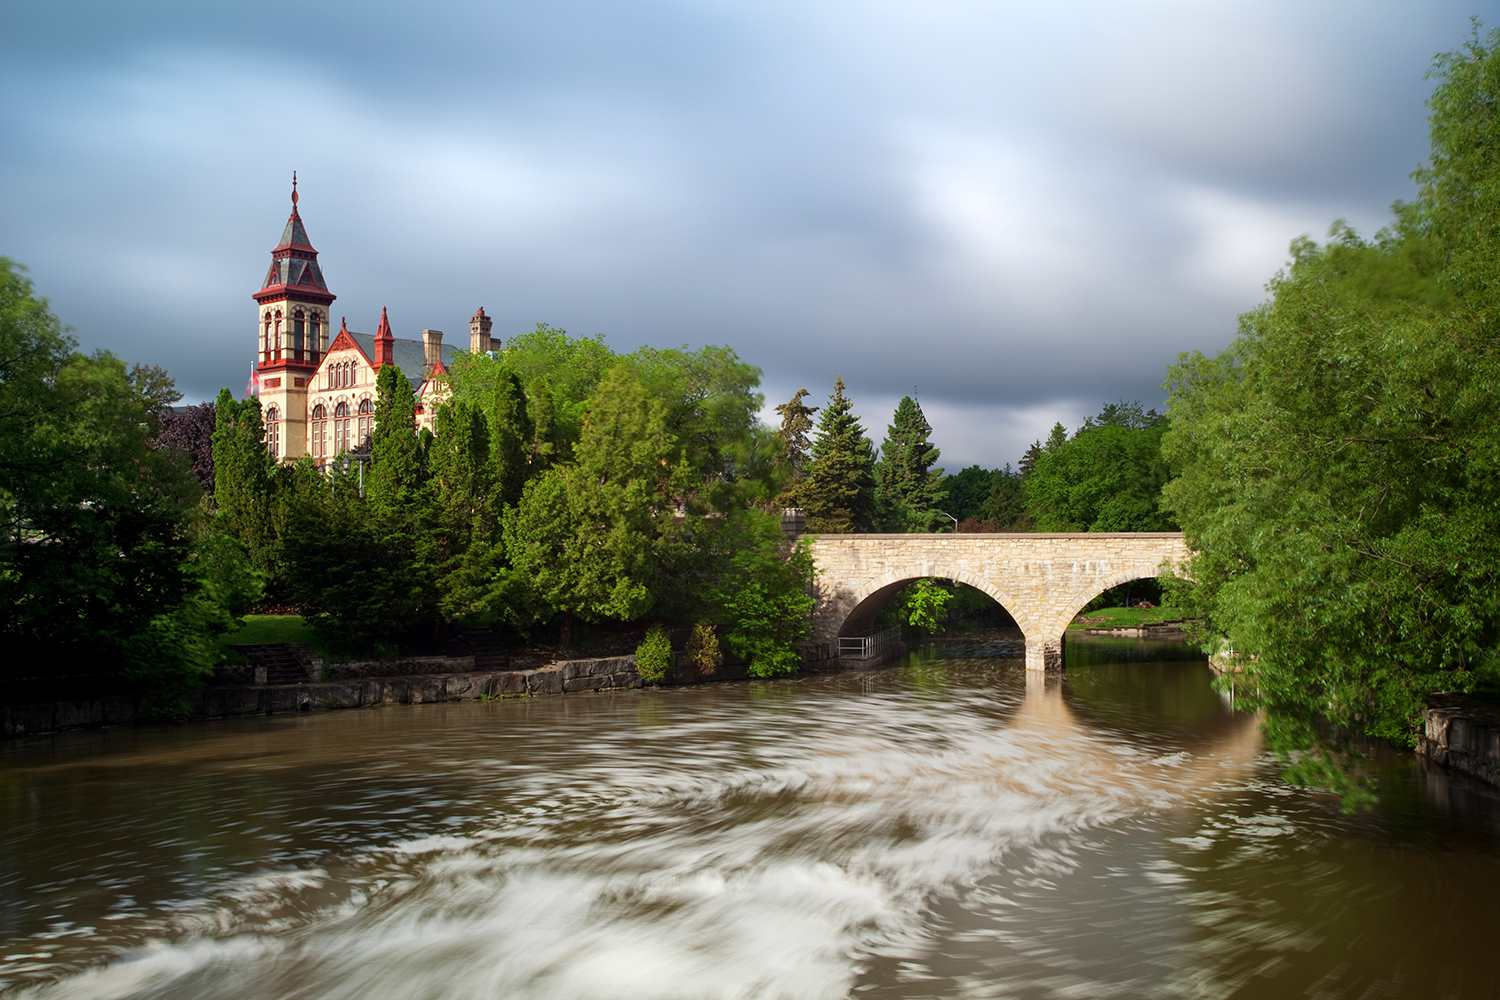 Stratford courthouse in Stratford Ontario behind the Avon river.